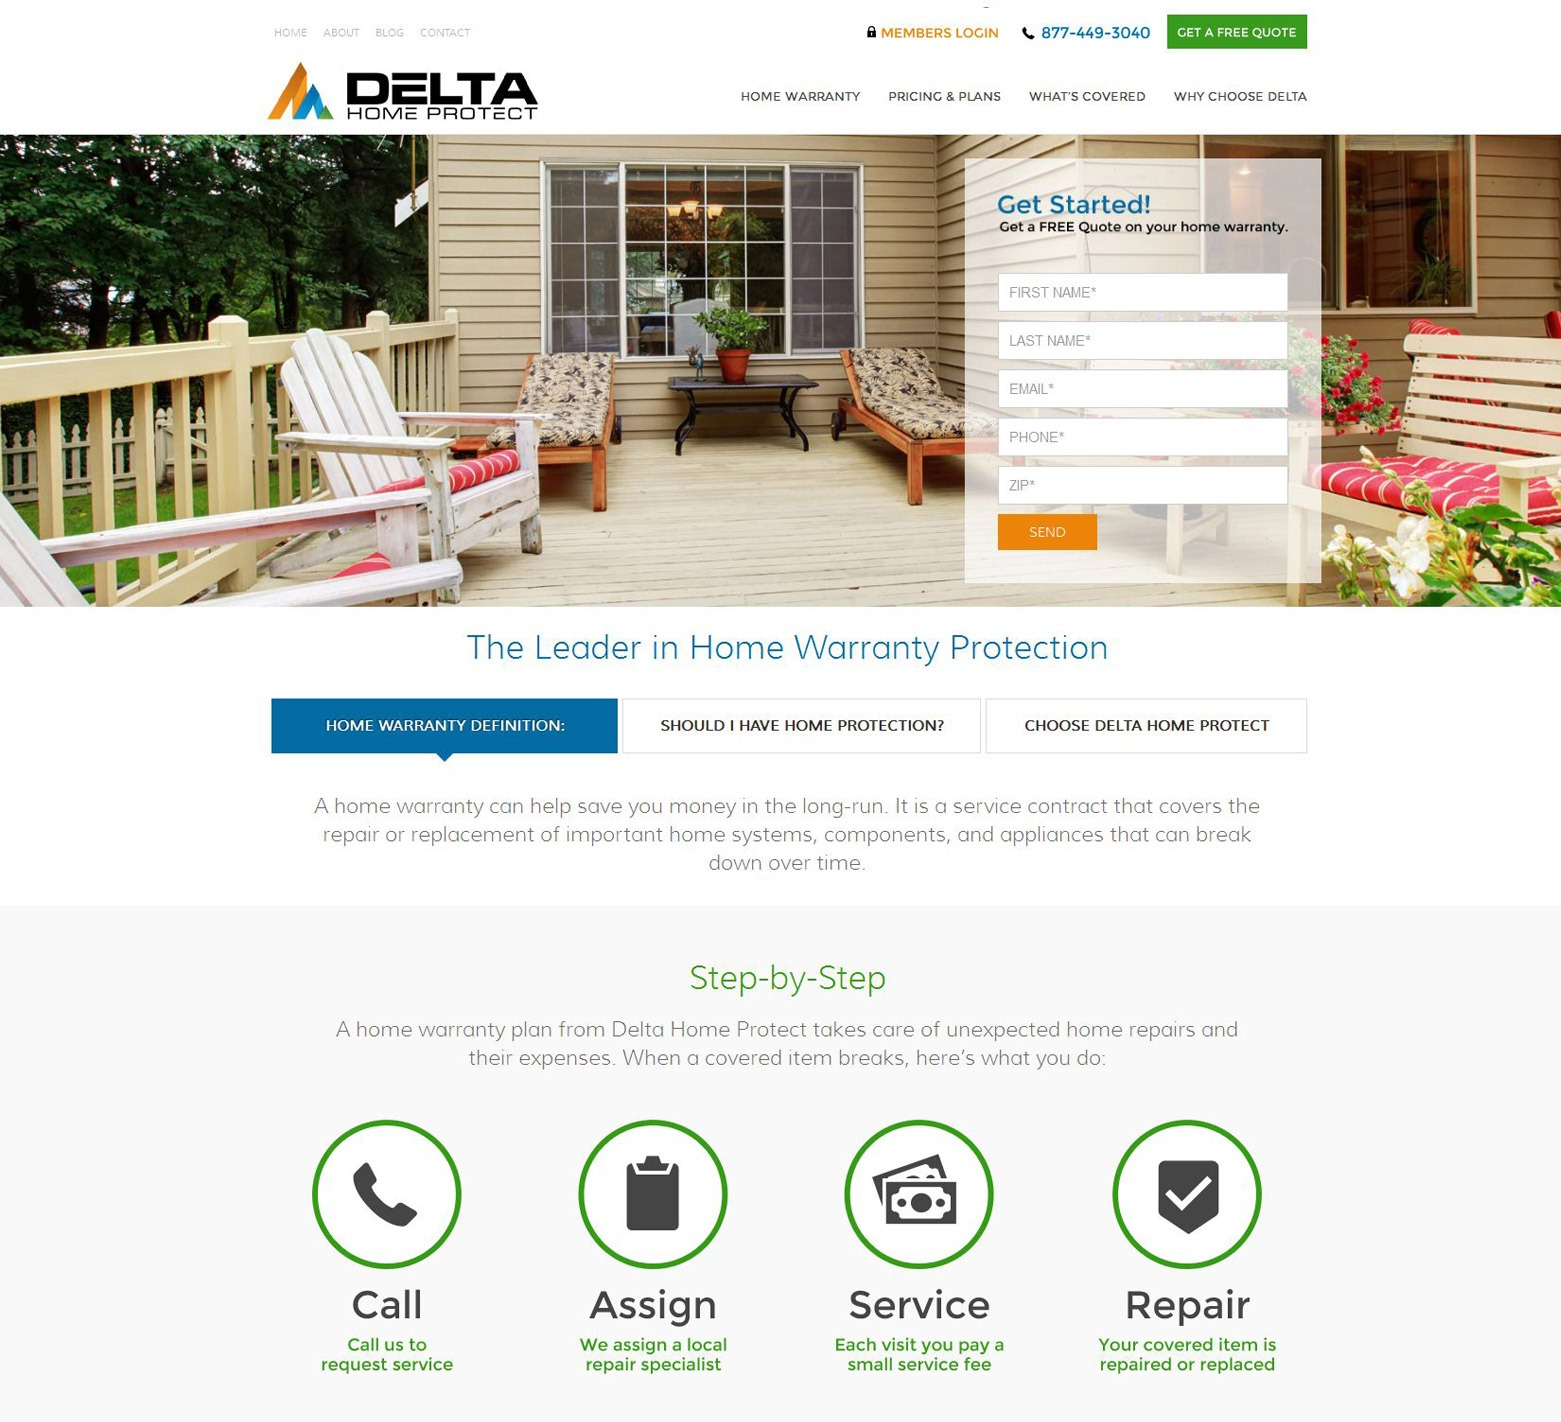 LA Angeles Home Warranty Web Design Company